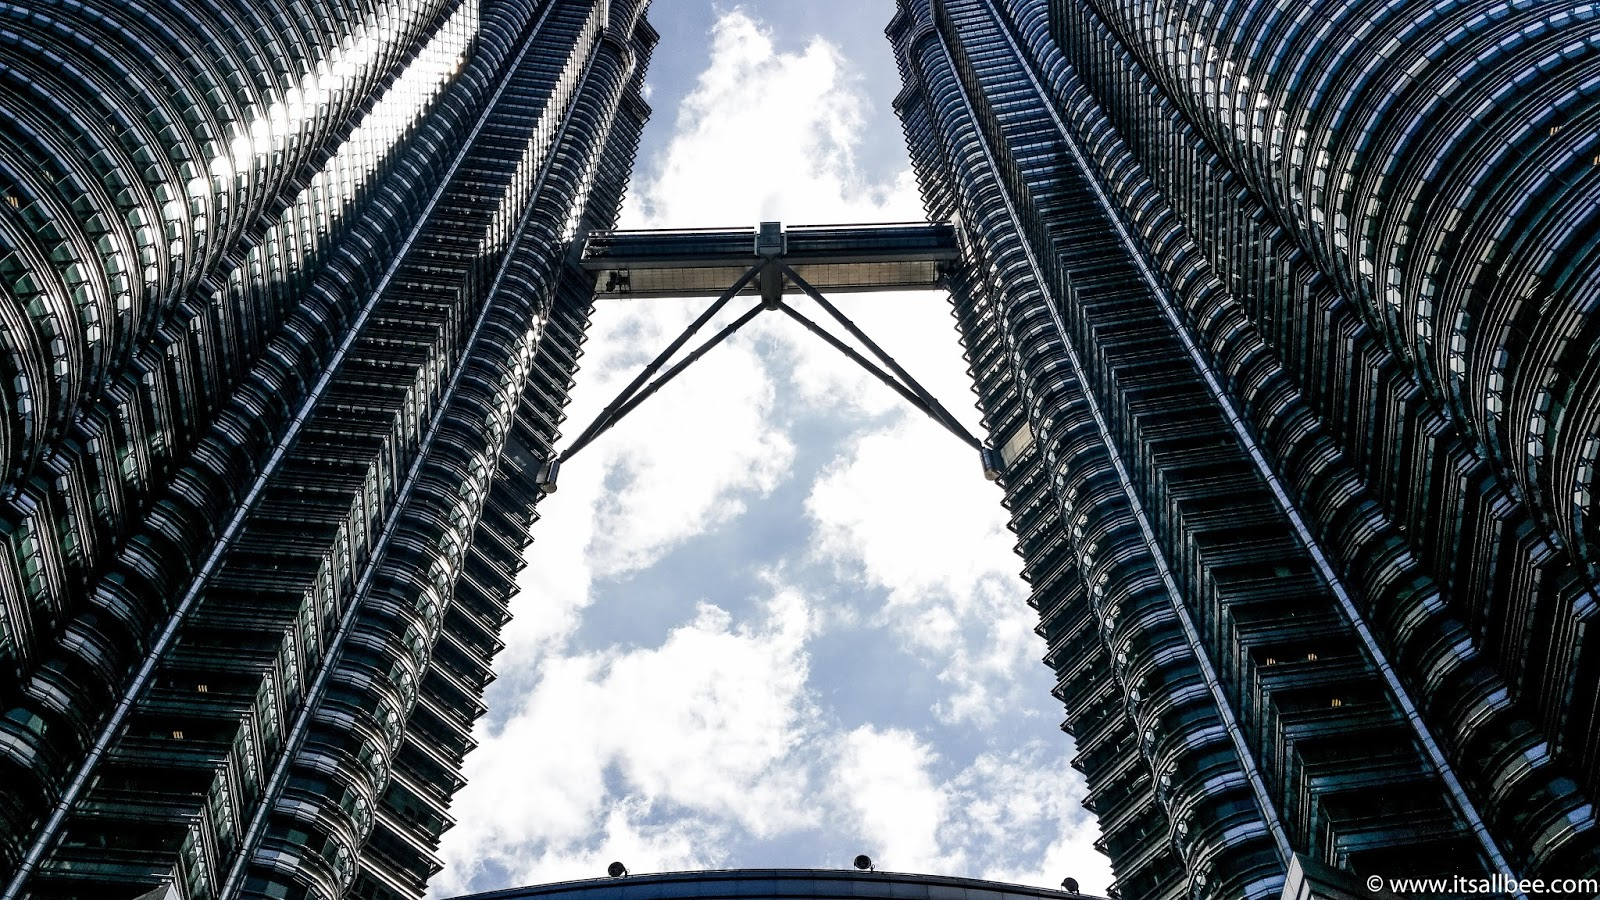 petronas towers 1 and 2